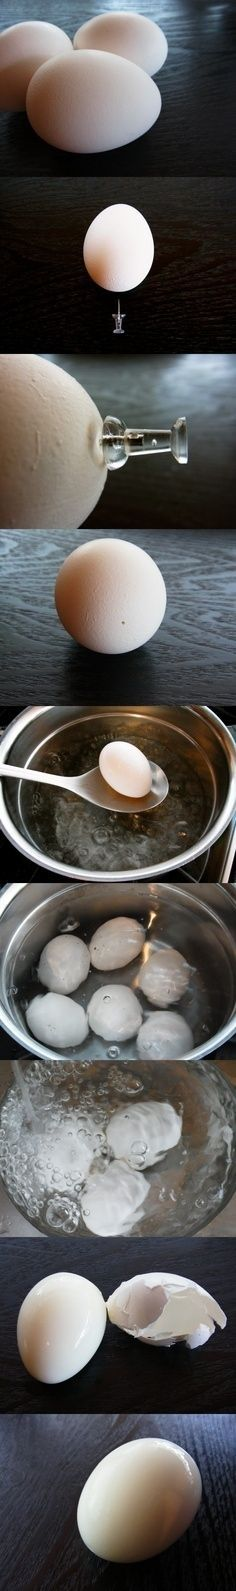 Use a Thumb Tac for the Perfect Boiled Egg | Community Post: 34 Creative Kitchen Hacks That Every Cook Should Know